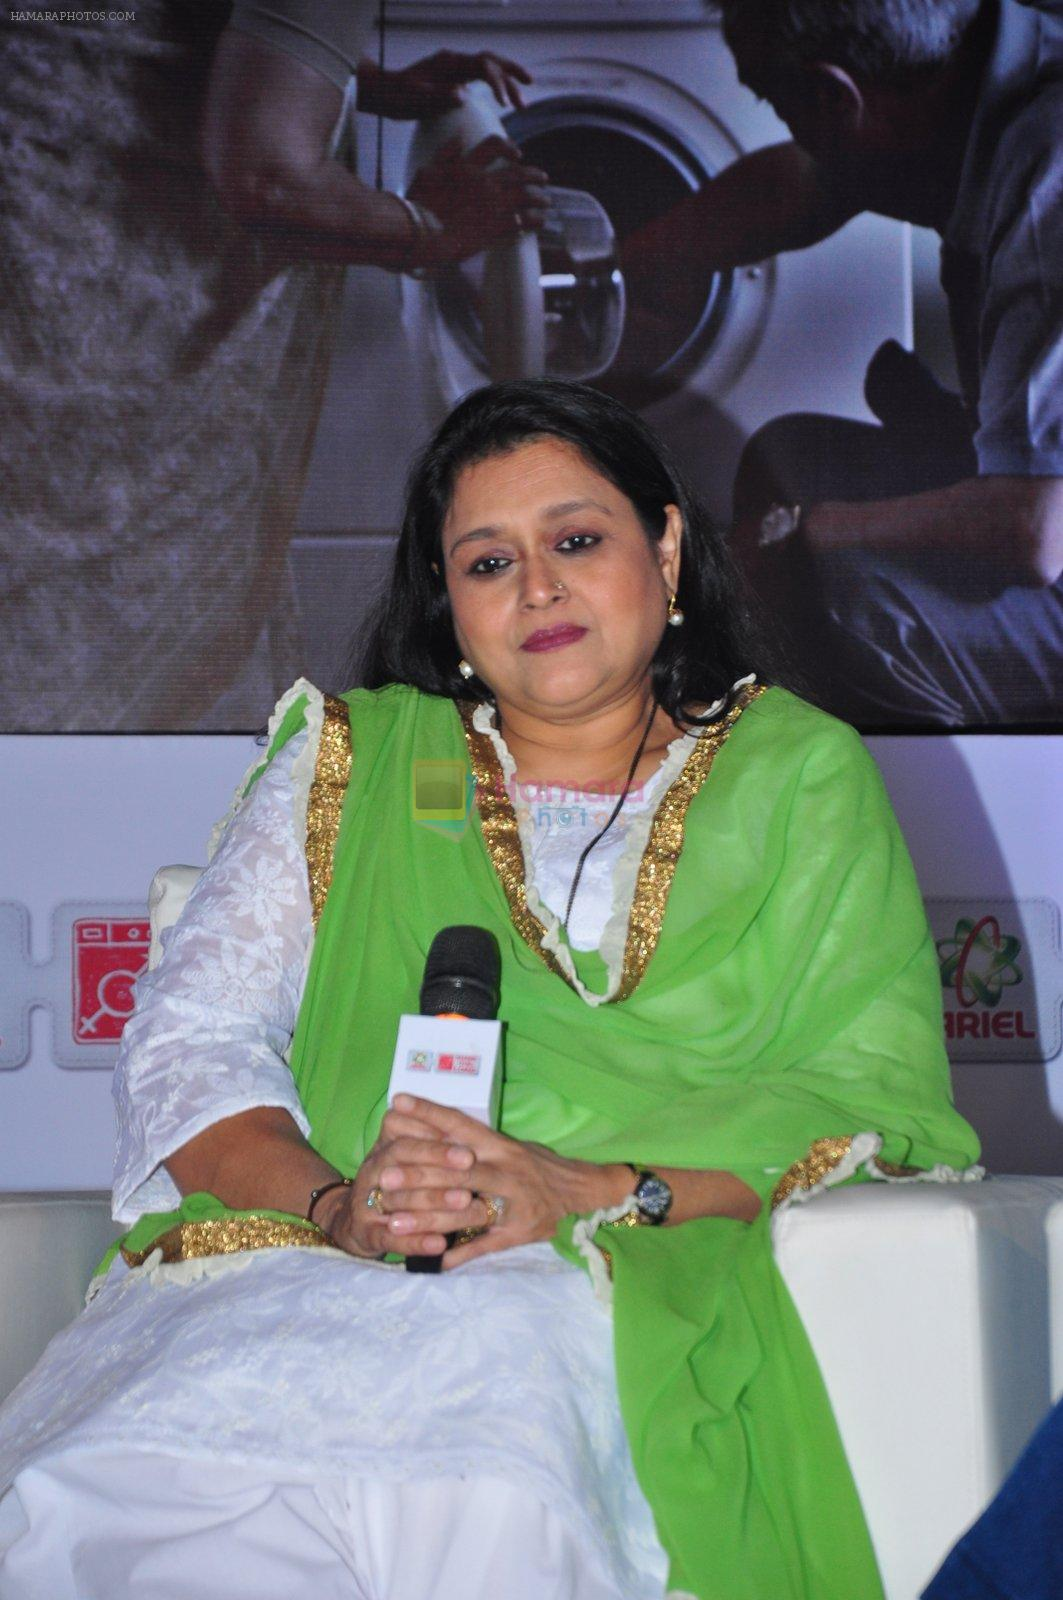 Supriya Pathak At Ariel Debate On Women's Day on 8th March 2016